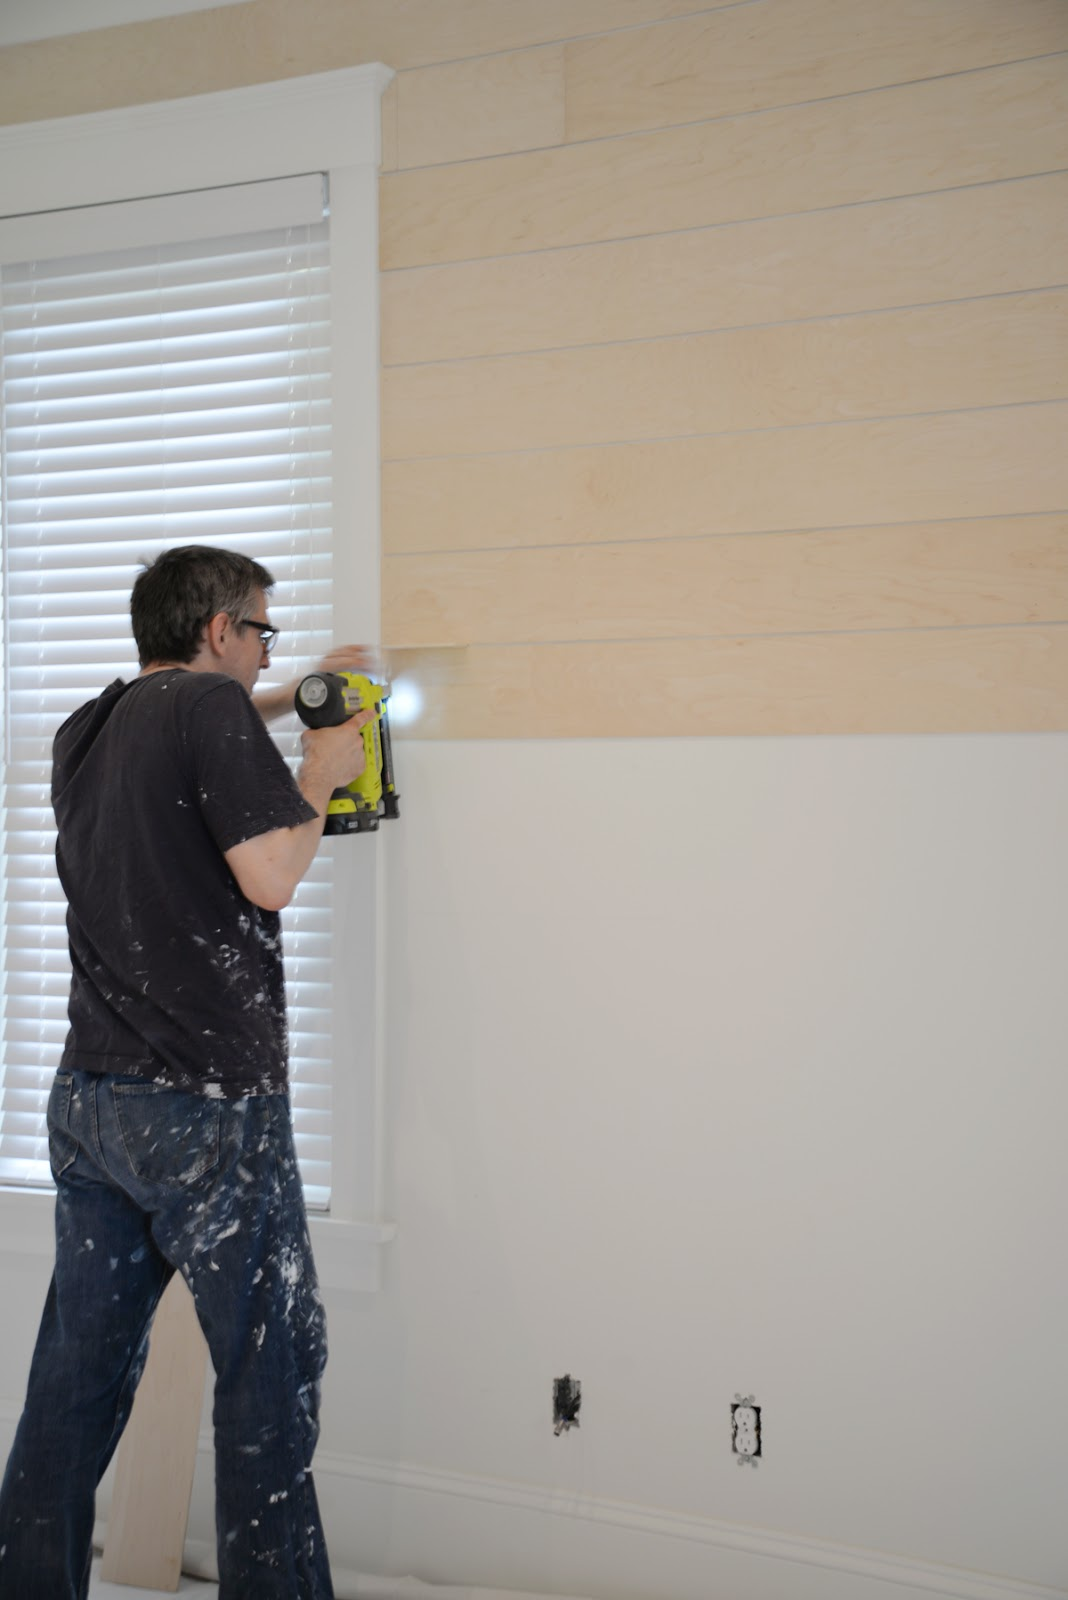 what you need to know before you diy shiplap, plywood shiplap installation | Ramblingrenovators.ca